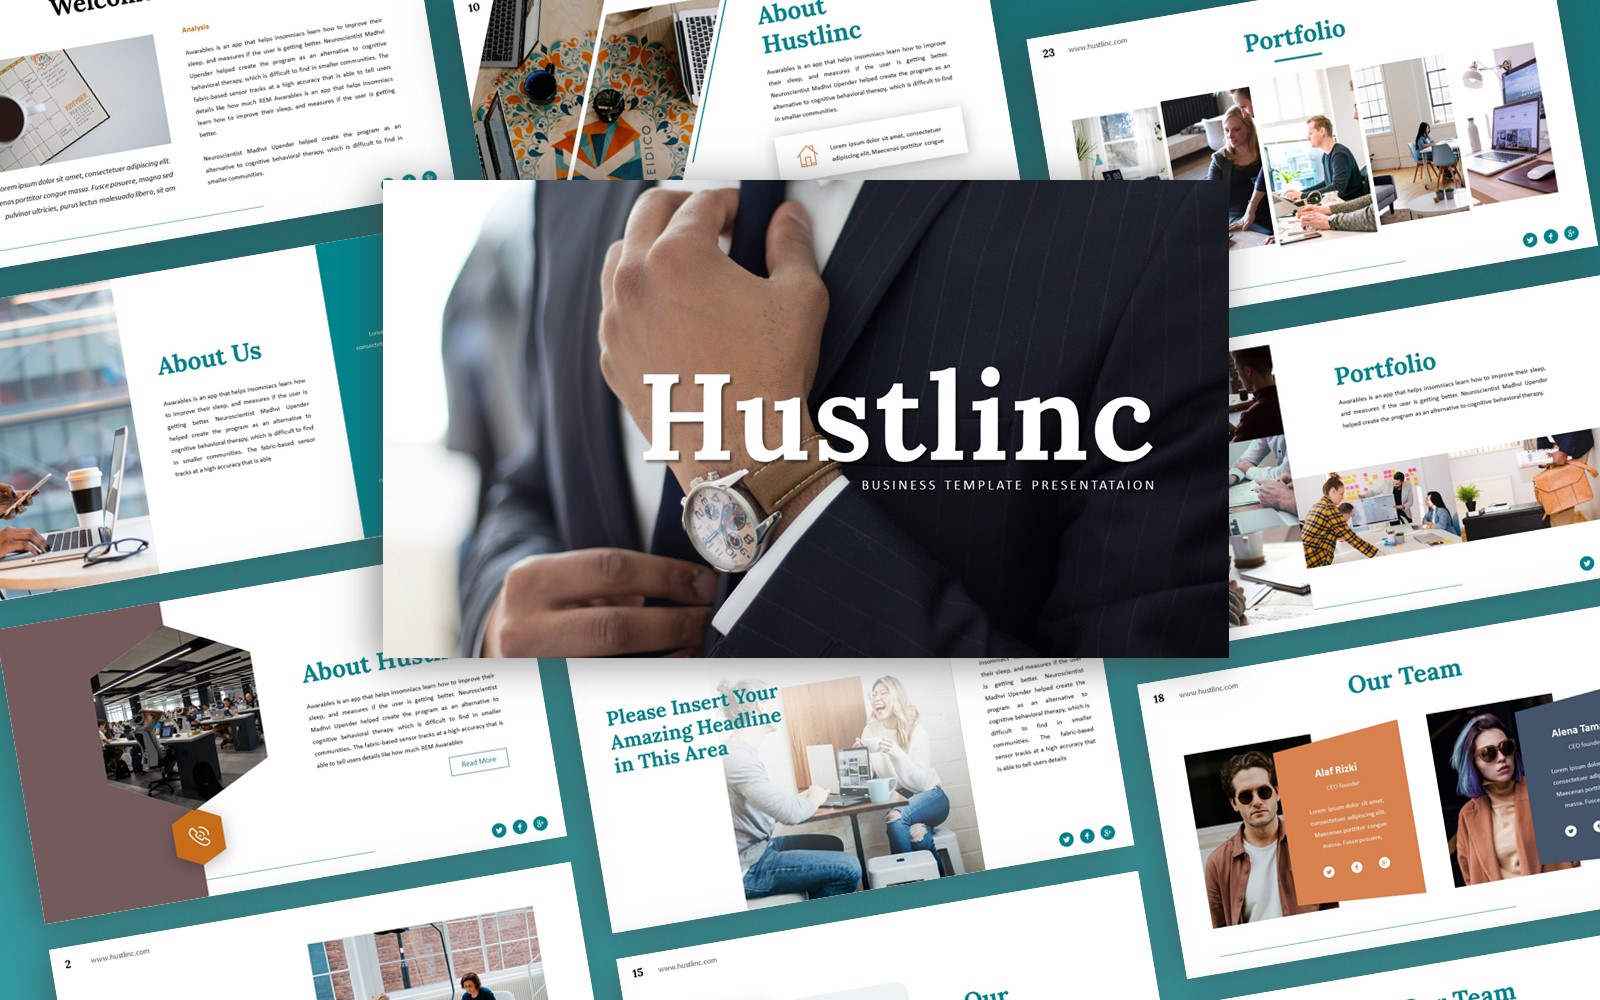 Hustlinc Business Presentation PowerPoint Template